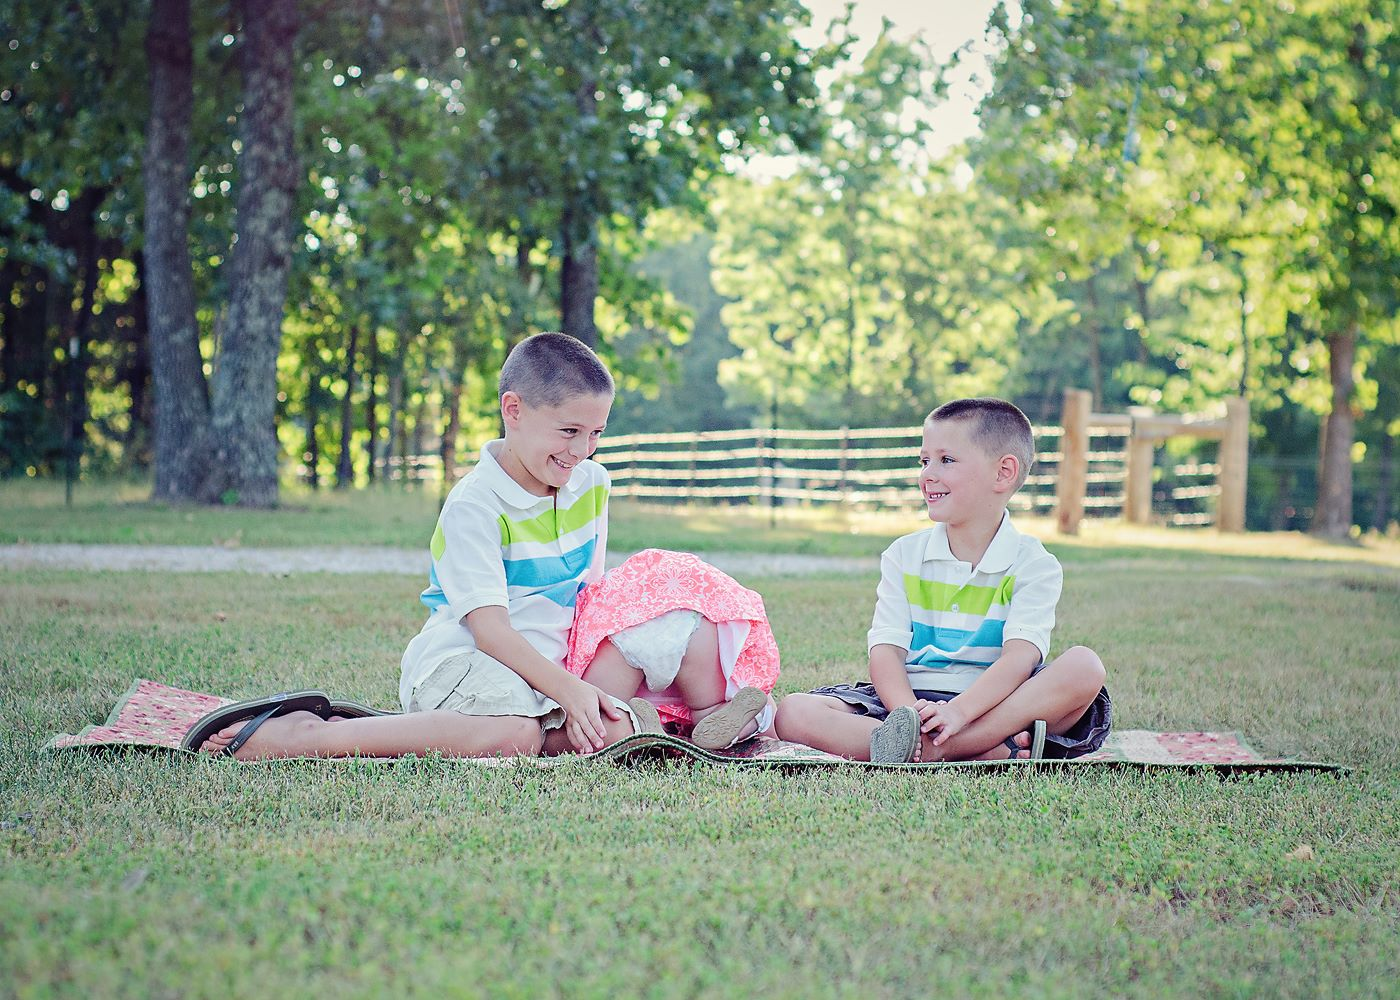 blooper-kristin-helsley-williams 20 Funny Photography Bloopers And Outtakes Activities Photo Sharing & Inspiration